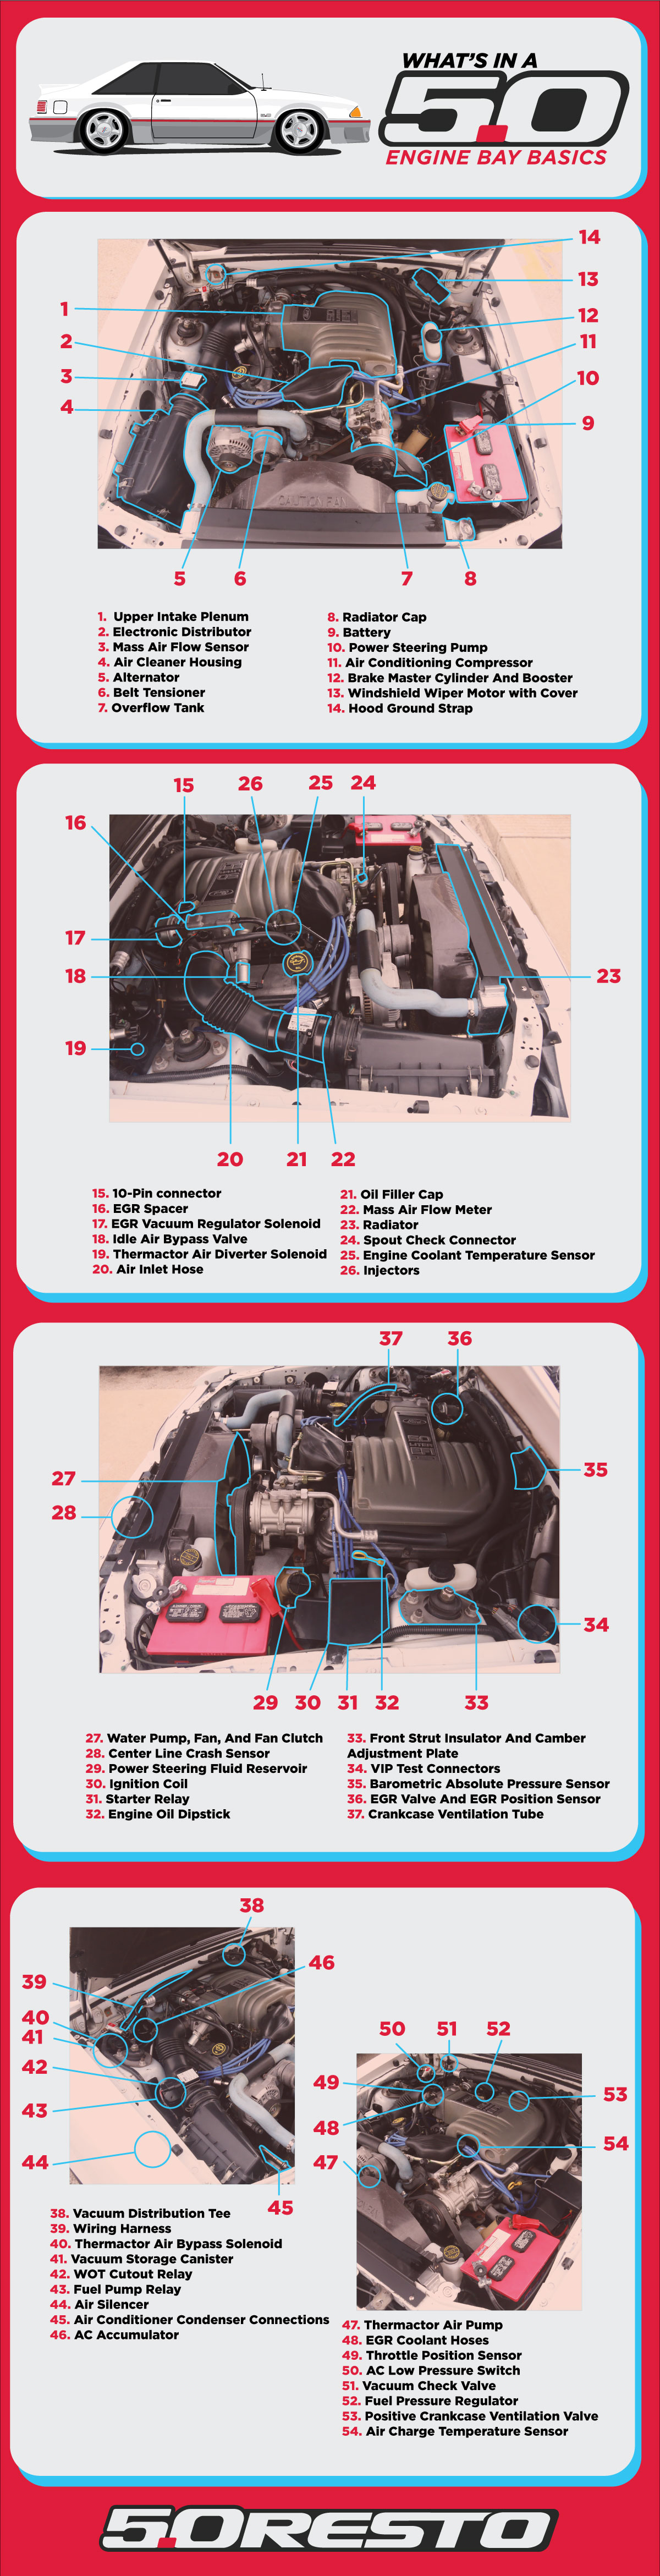 [DIAGRAM_3NM]  Fox Body Engine Bay Diagram (1986-1993) - LMR.com | 1986 Ford Mustang Lx Engine Diagram |  | Late Model Restoration